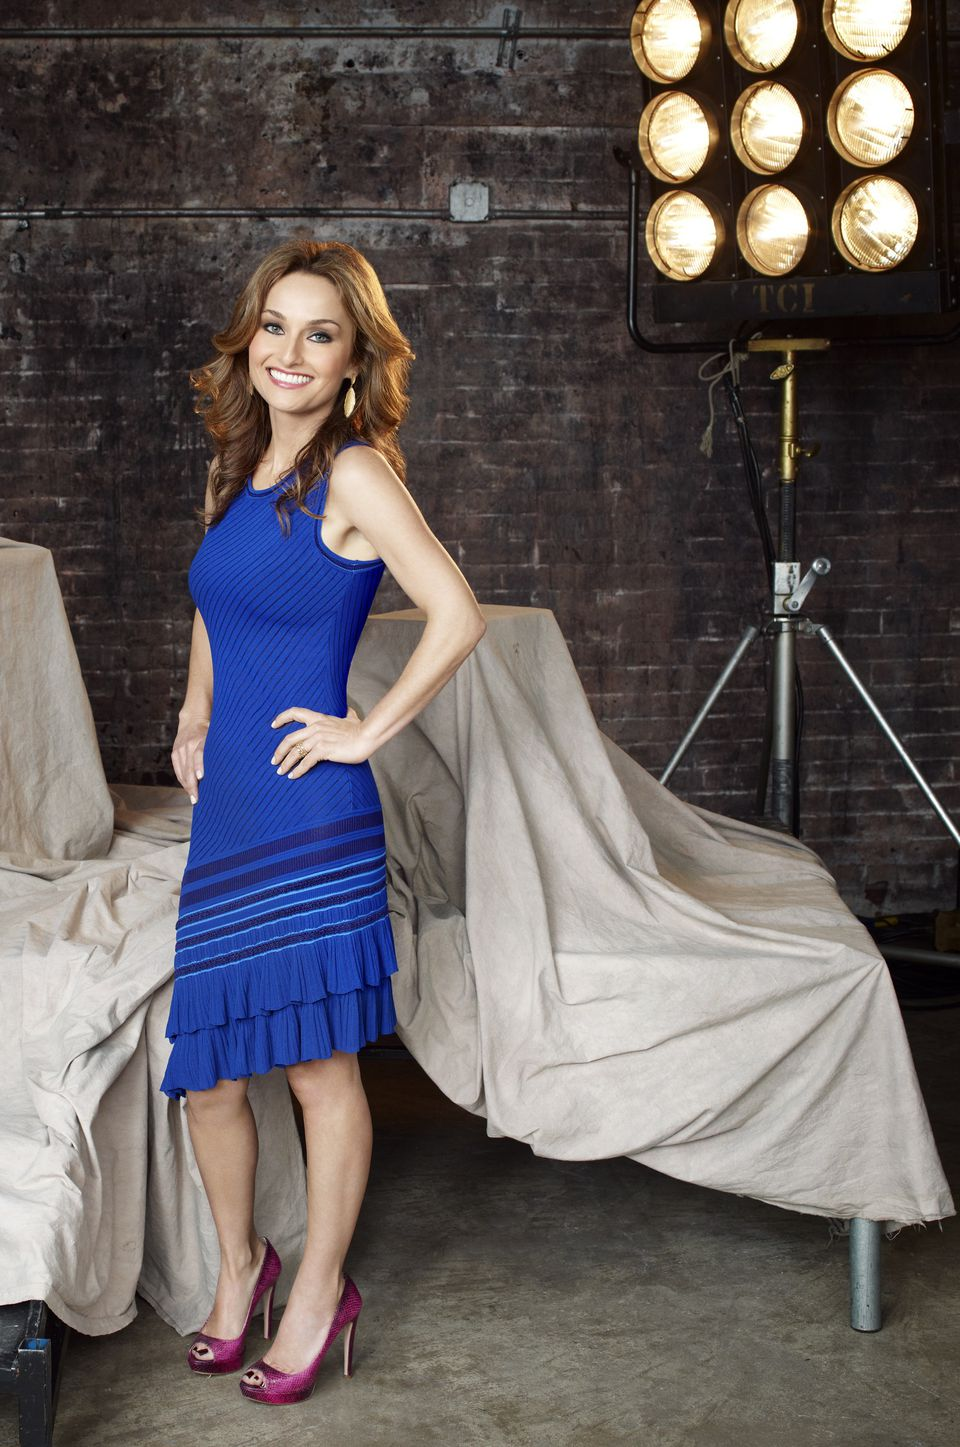 Food Network Star Giada de Laurentiis